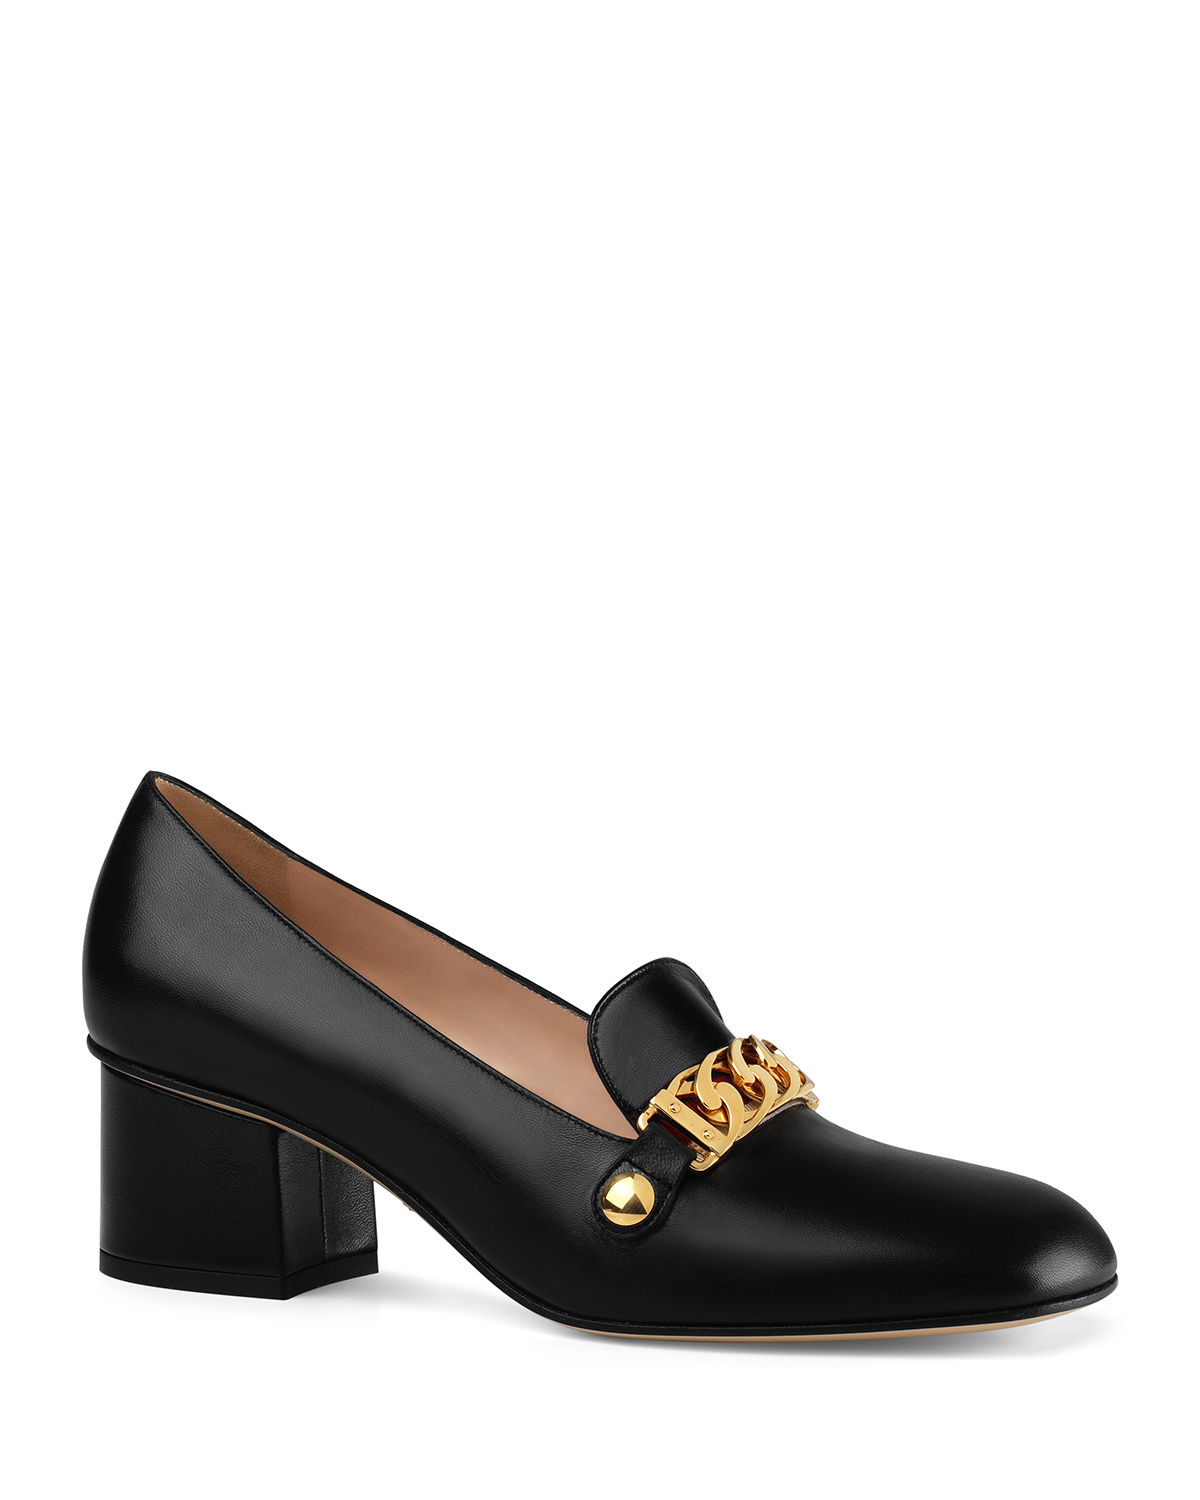 06445fc2cad Gucci Sylvie 55mm Leather Loafer